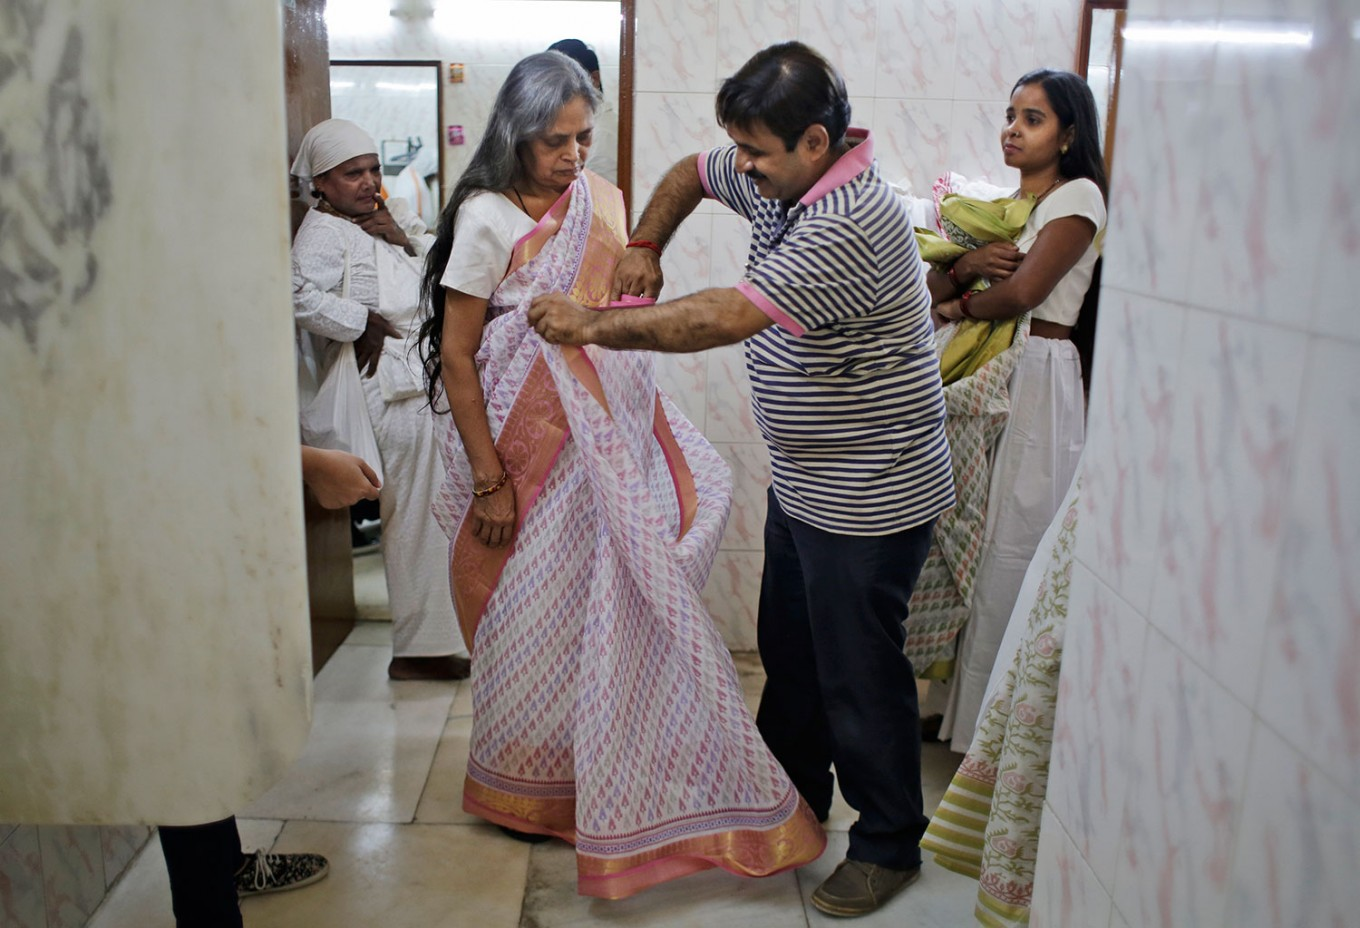 An Indian Hindu widow gets dressed backstage before participating in a fashion show in New Delhi, India, Saturday, Oct. 15, 2016. In most of India, millions of Hindu widows are expected to live out their days in quiet worship, dressed only in white. They are typically barred from all religious festivities because their very presence is considered inauspicious. Their lives appear to be changing for better with women's groups and Indian aid organizations taking interest in their welfare. AP Photo/Altaf Qadri